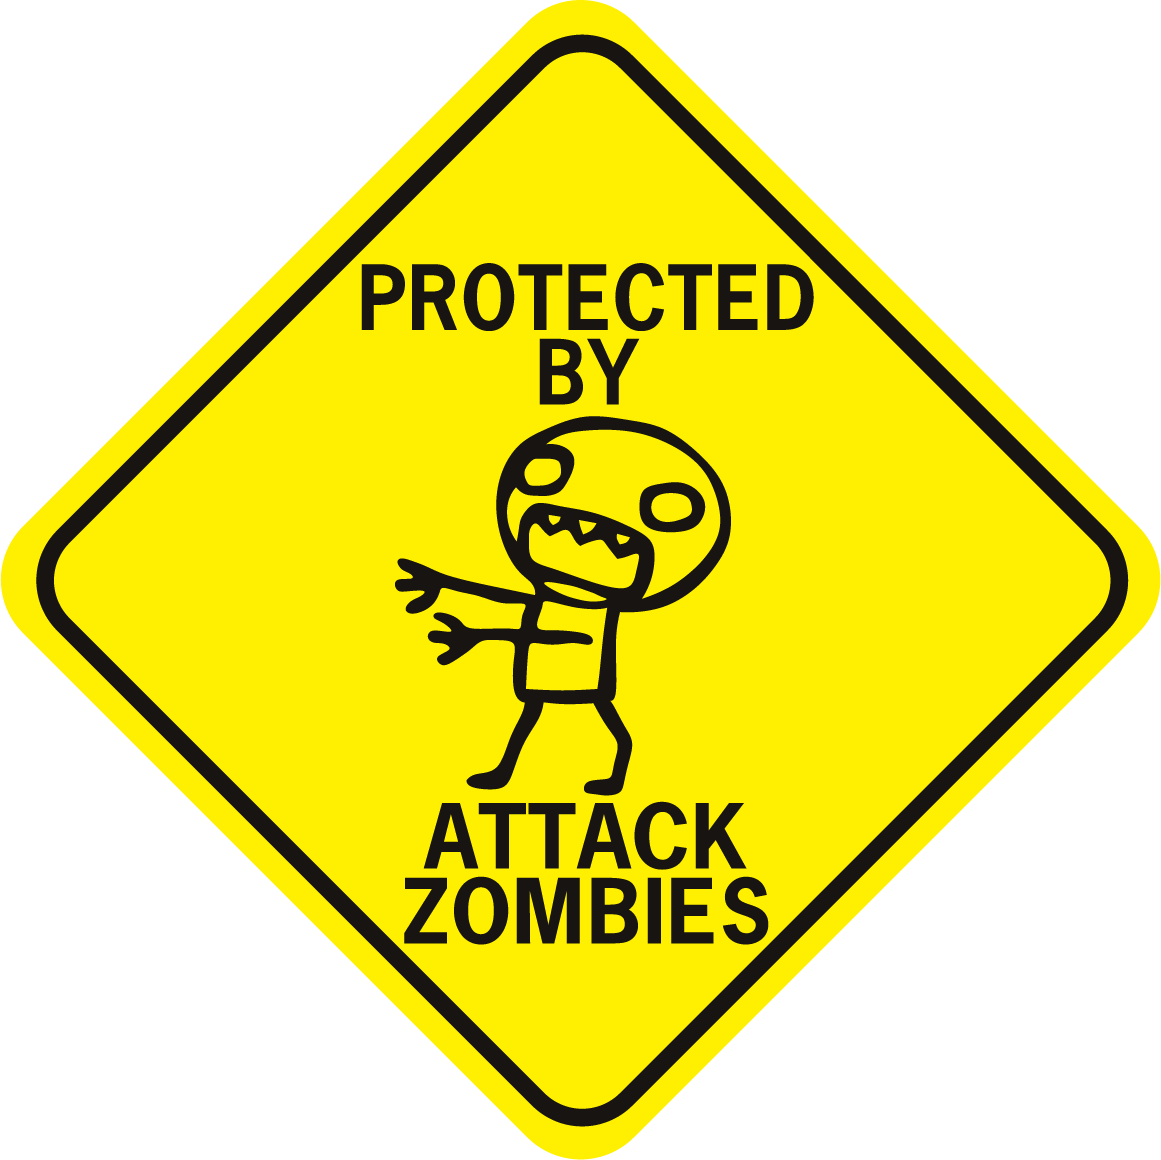 Zombies Protected By Attack Zombies